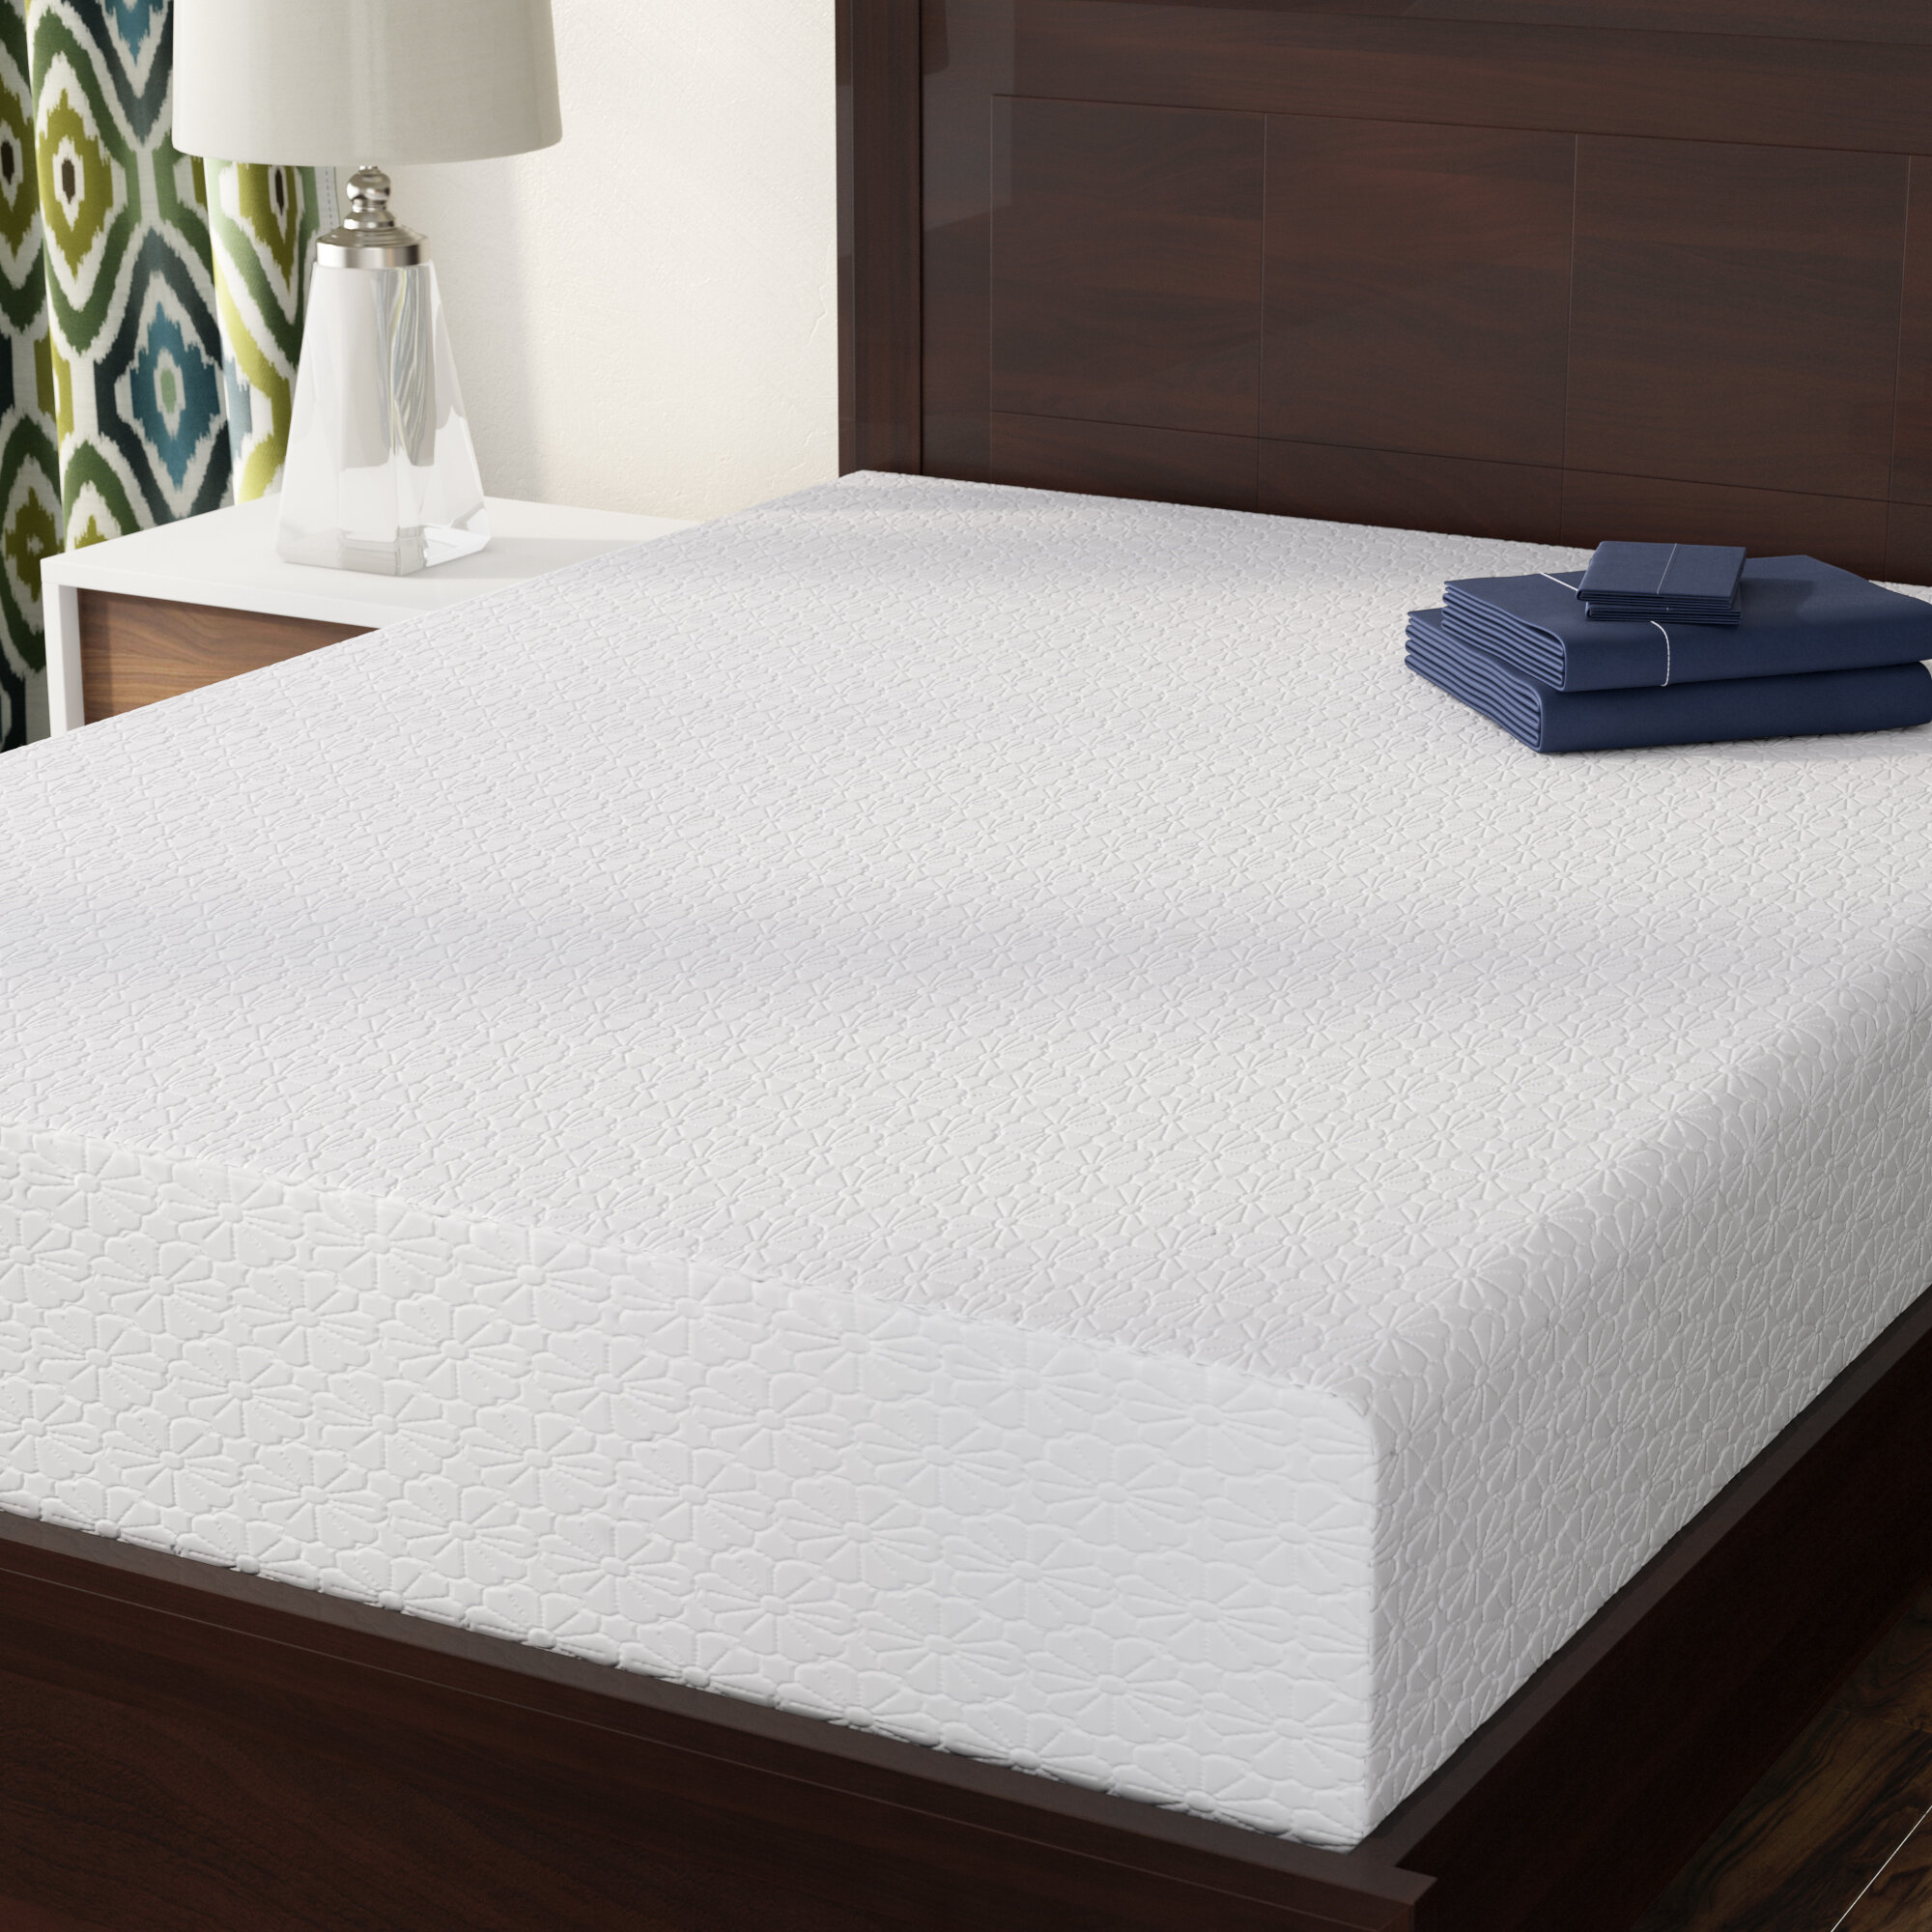 vs elegant mattress amp casper jan review of related toppers topper tempurpedic sale post parison luxury cooling